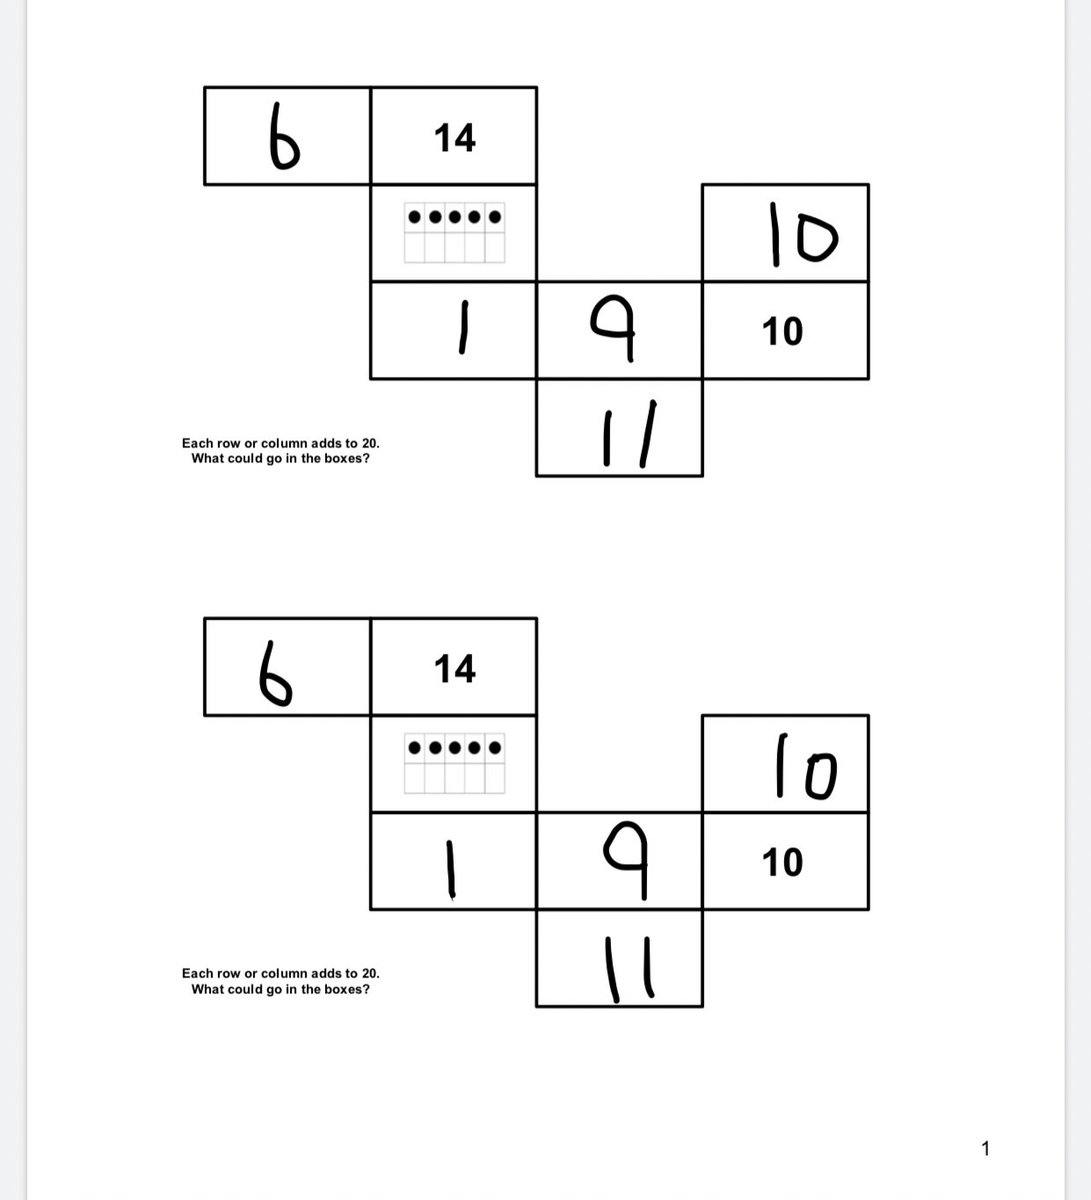 Loved the number puzzles from @MrsUnsworthWTT. It's a great, engaging math puzzle for students that works well for distance learning. Students complete online or write them out. They also came up with their own number puzzles -so friends can try. #math #earlyears #numberpuzzles pic.twitter.com/V5bBNi4Q5Y